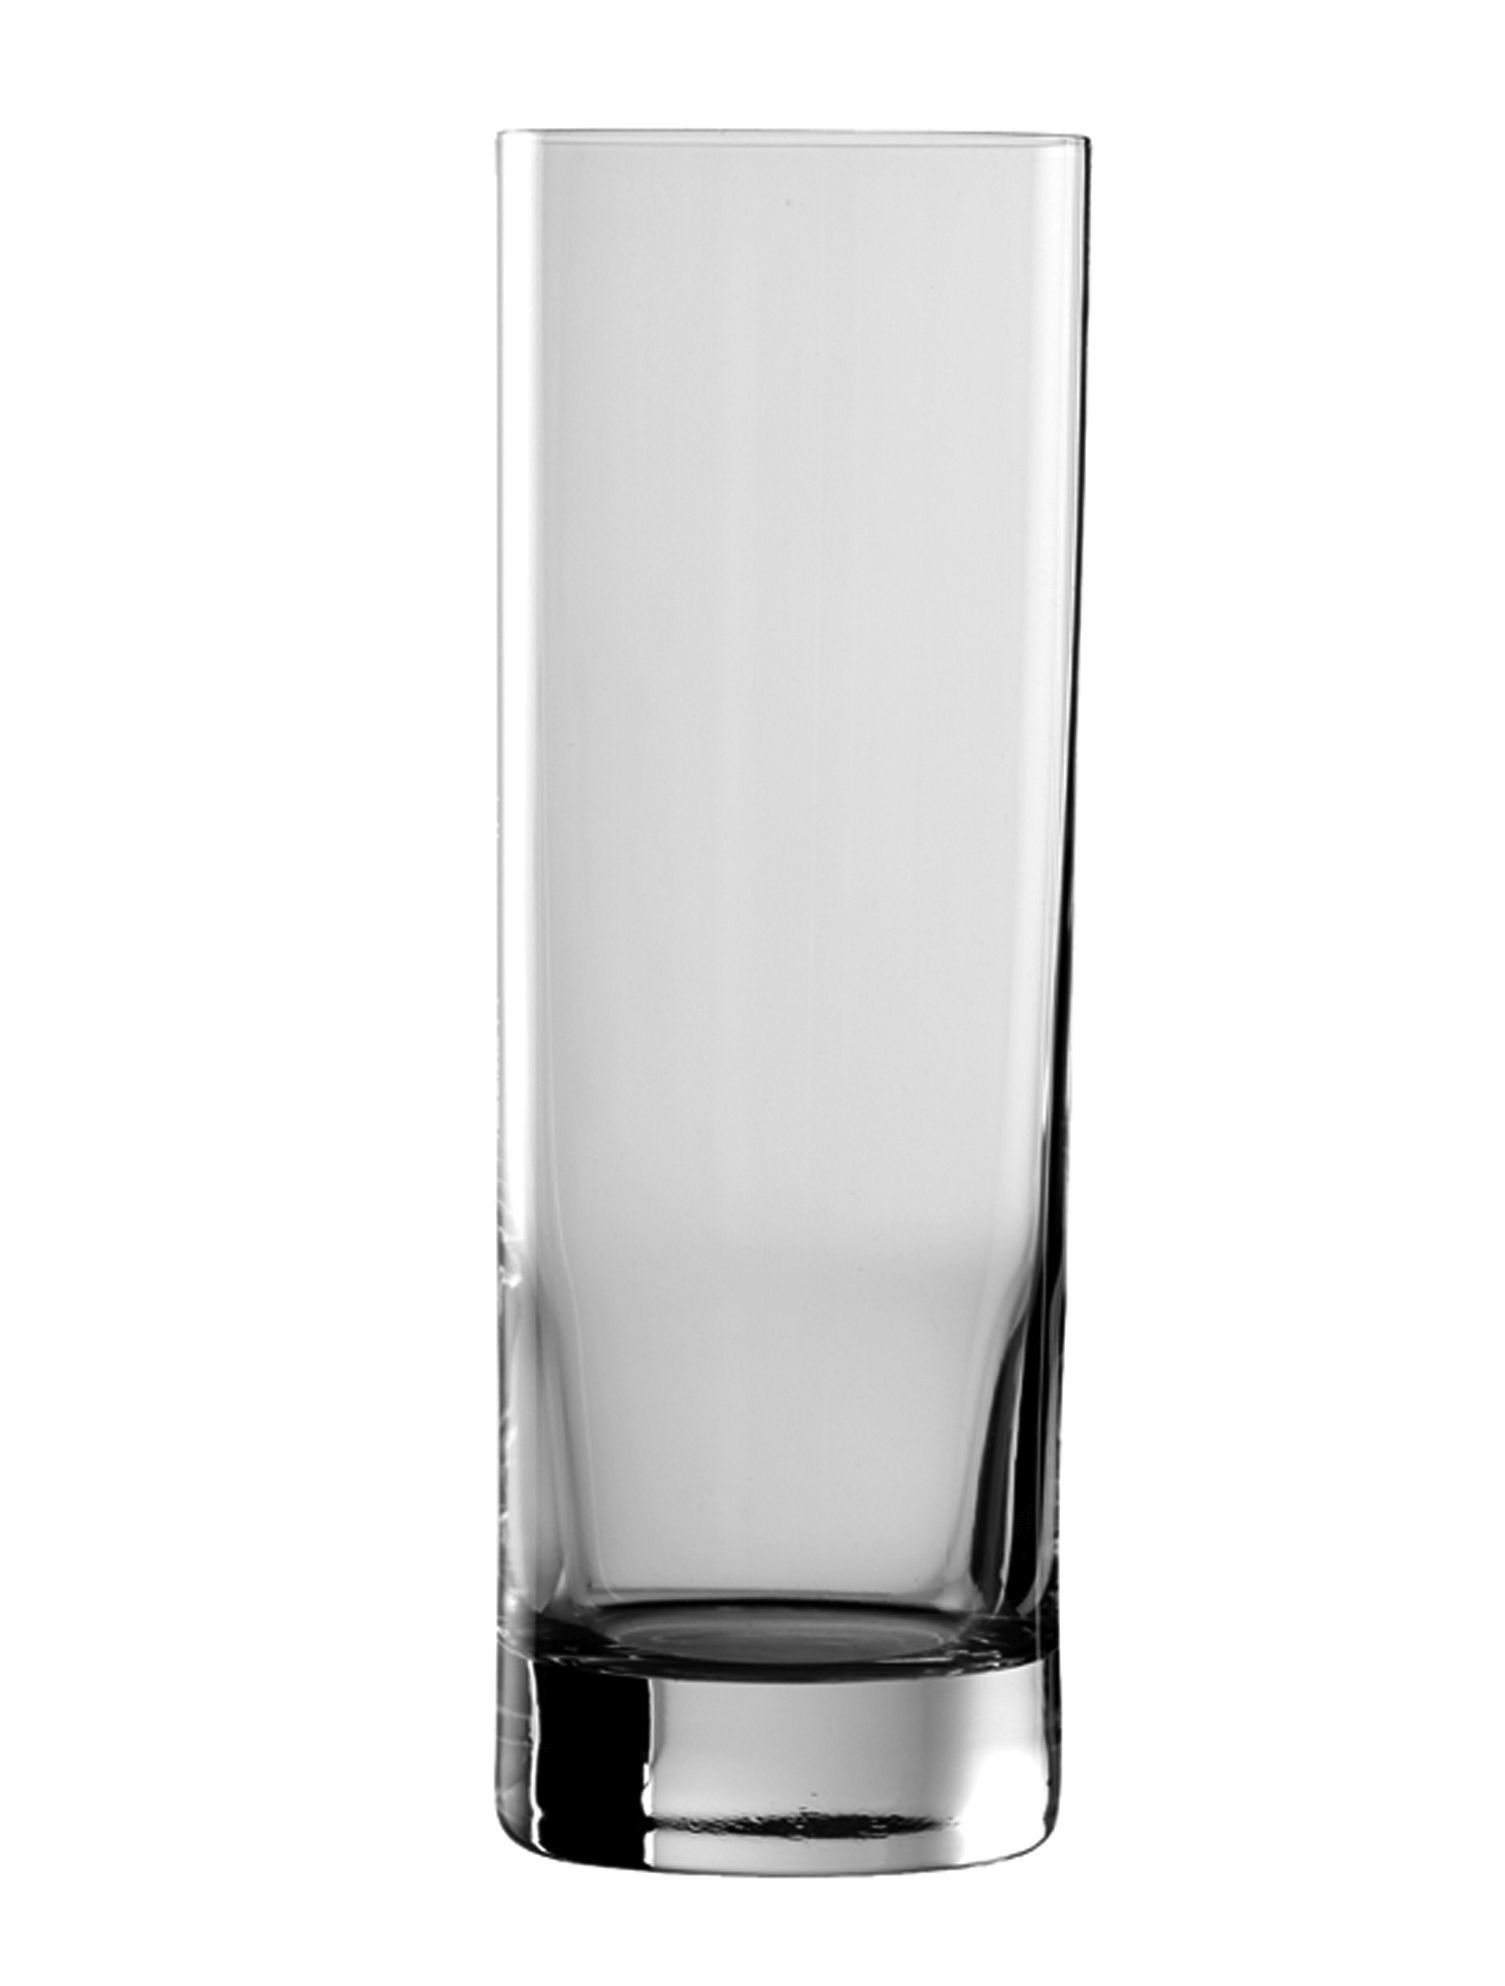 Stolzle New York Bar Collins Glasses, Set of 6 by Stolzle